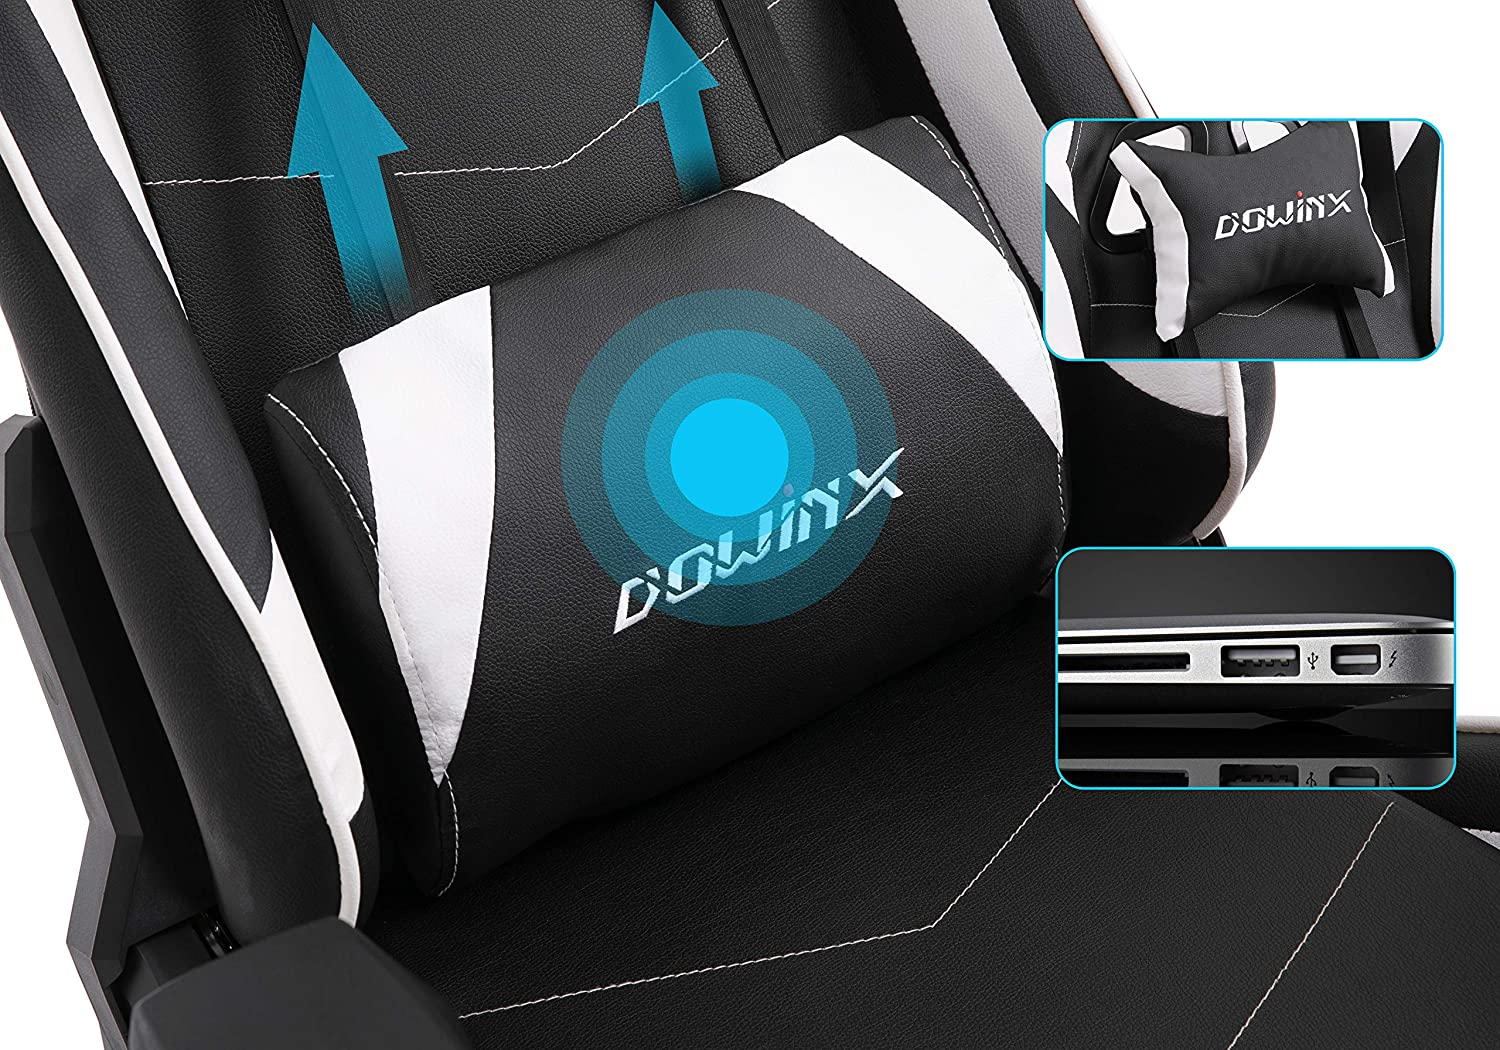 Amazon.com: Dowinx Gaming Chair Ergonomic Racing Style Recliner with Massage Lumbar Support, Office Armchair for Computer PU Leather E-Sports Gamer Chairs ...